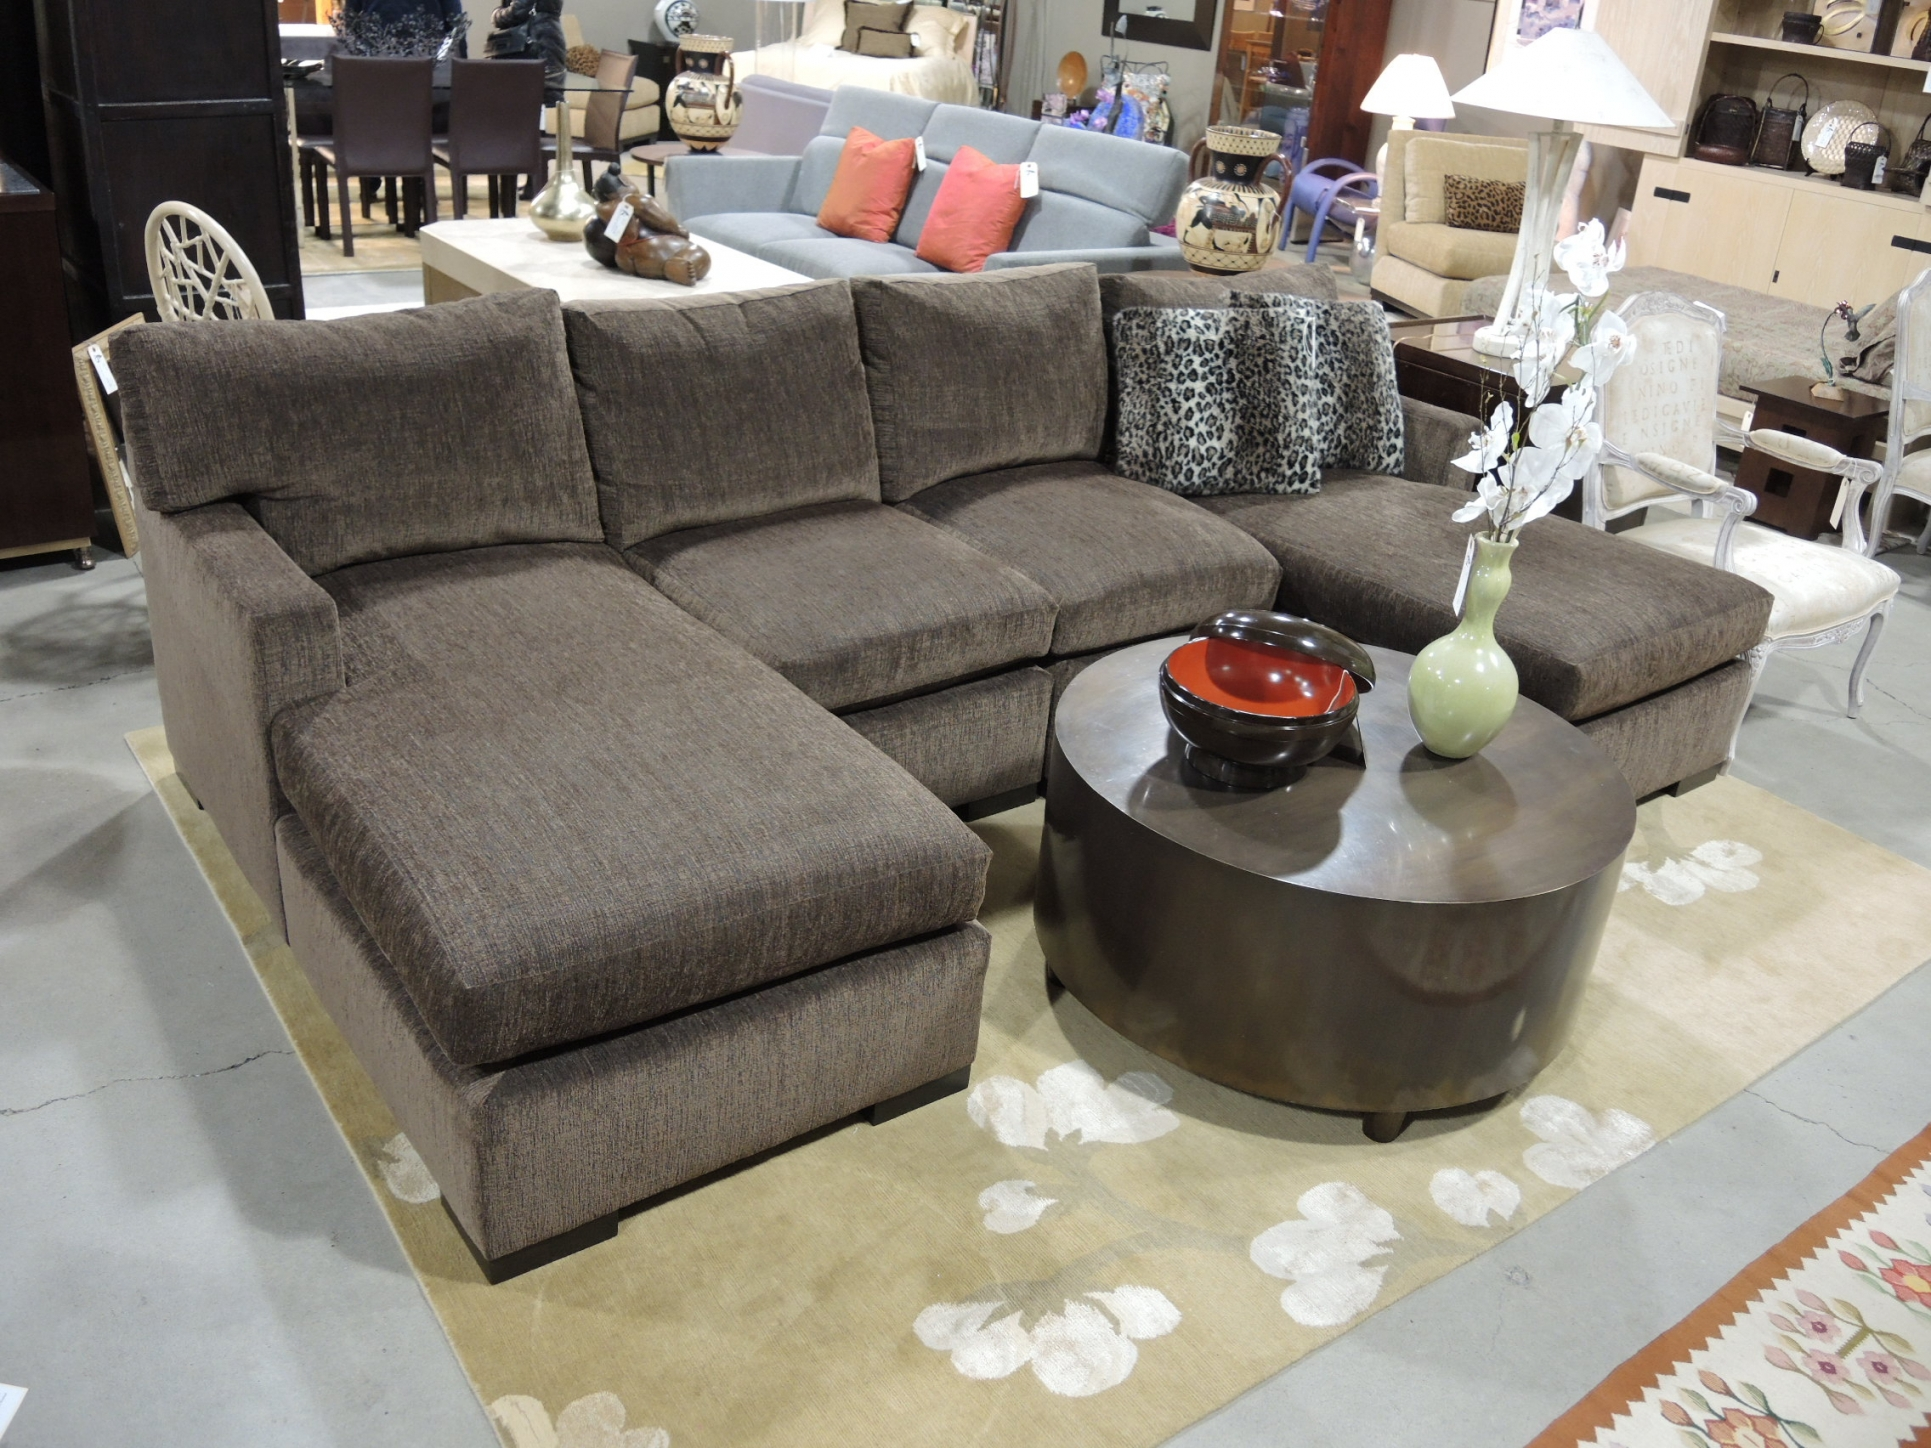 Sectional Sofa With Double Chaise Pertaining To Coffee Table For Sectional Sofa With Chaise (Image 15 of 15)